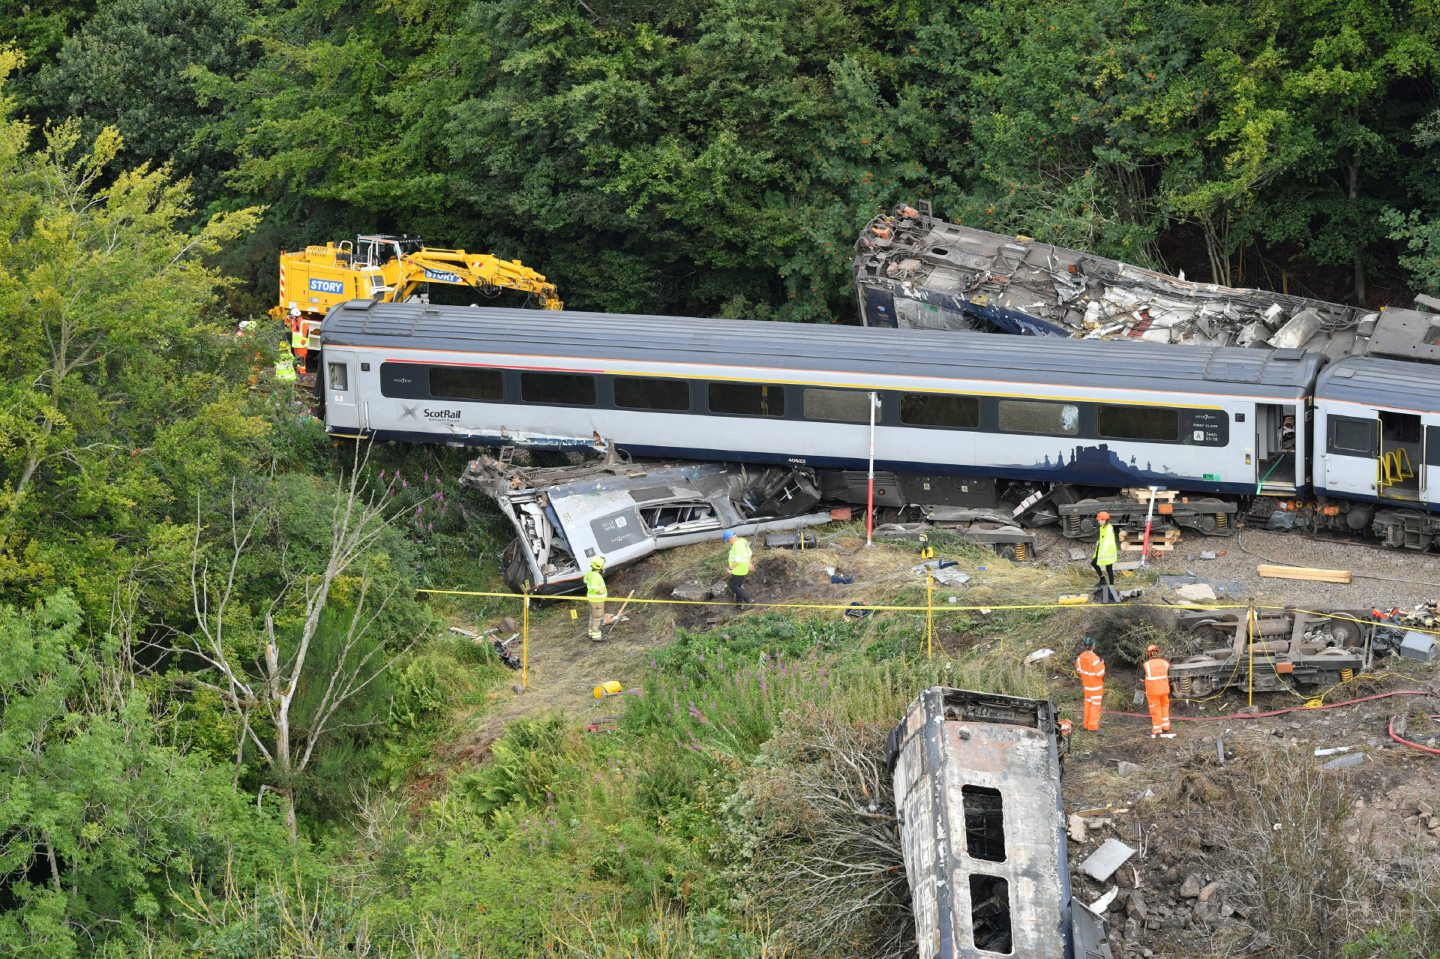 A crane is brought in to the scene near Stonehaven, Aberdeenshire, following the derailment of the ScotRail train.